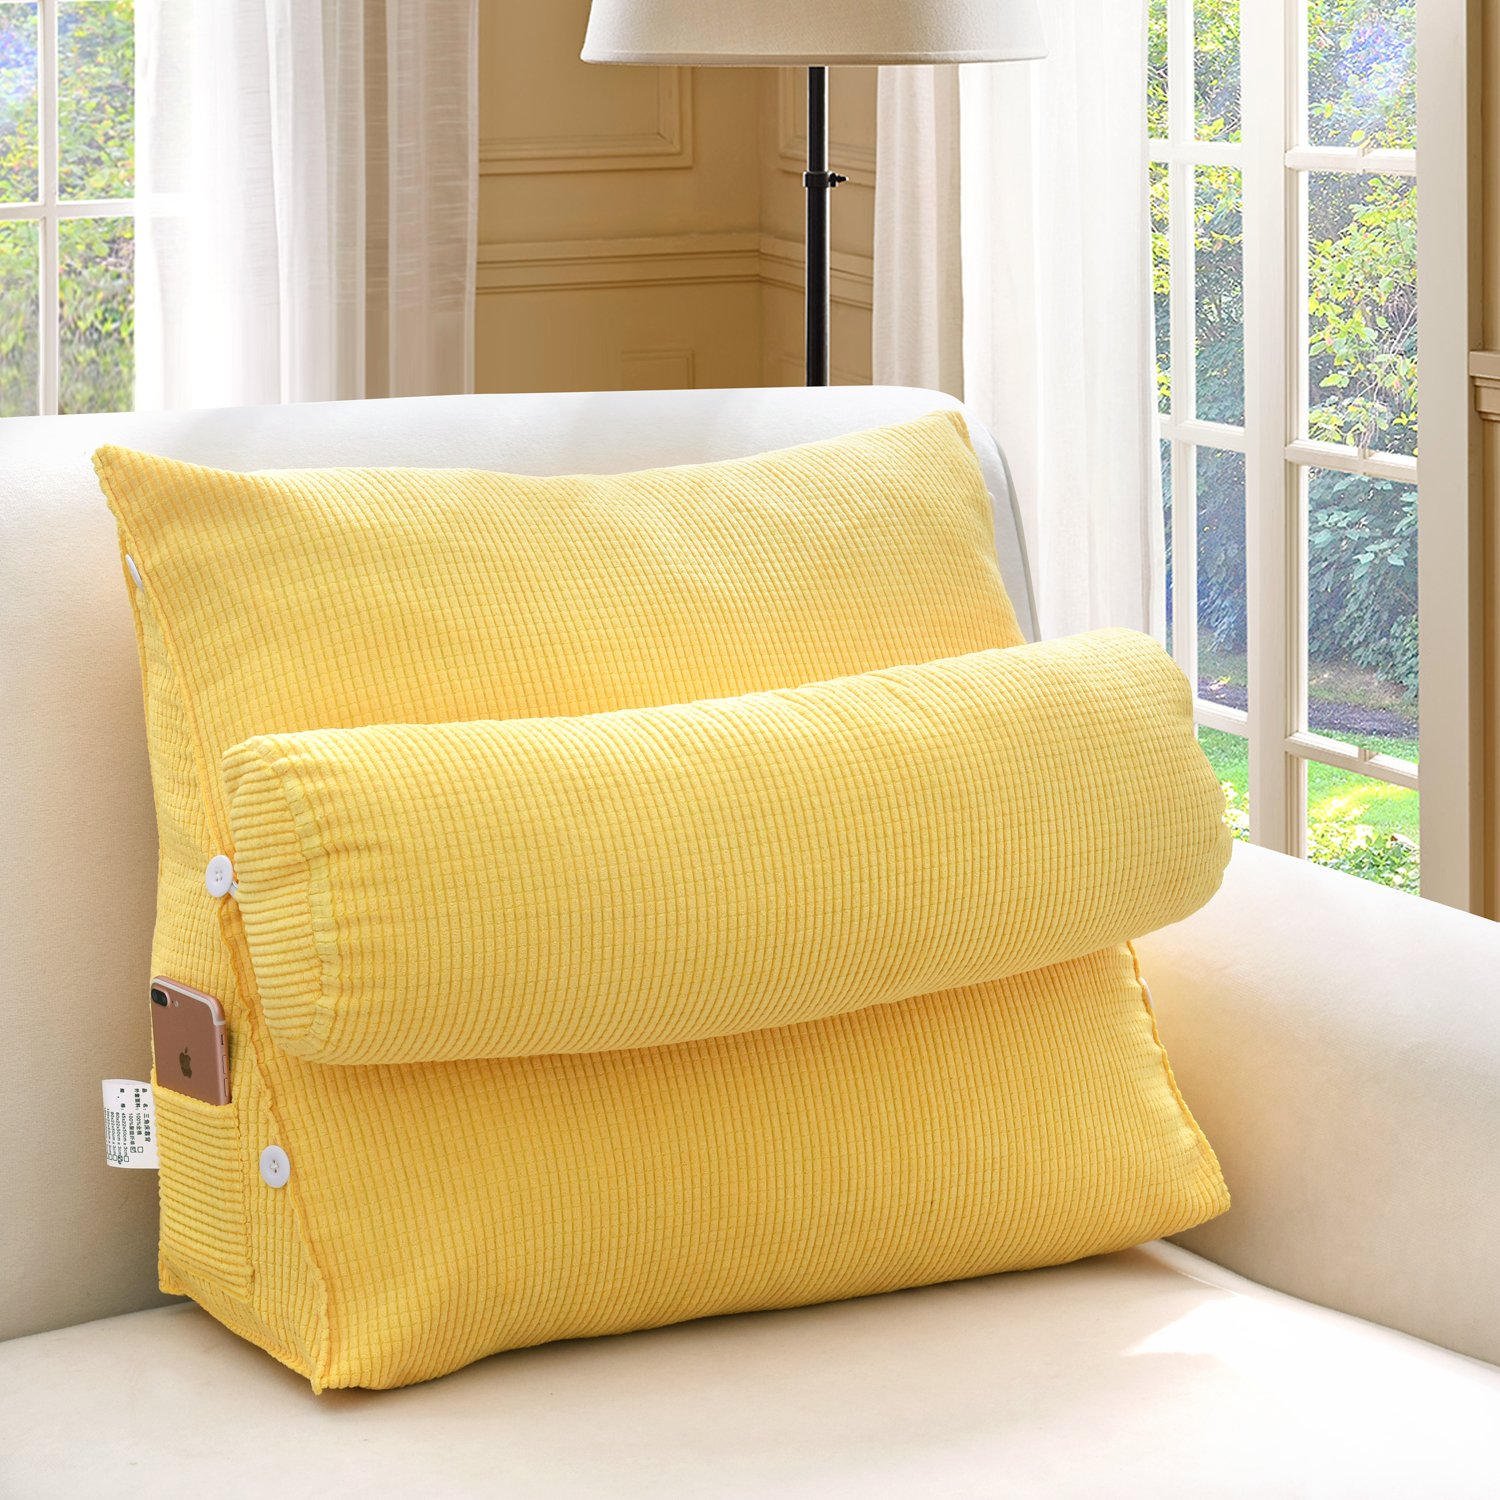 Buildingdream soild Sofa or Bed Filled Triangular Wedge Cushion Positioning Support Pillow Lumbar Cushion - Lumbar Pillow, Protect and Soothe Your Back (21.6(L) 11.8(W) 23.6(H) inch, Stayle B)